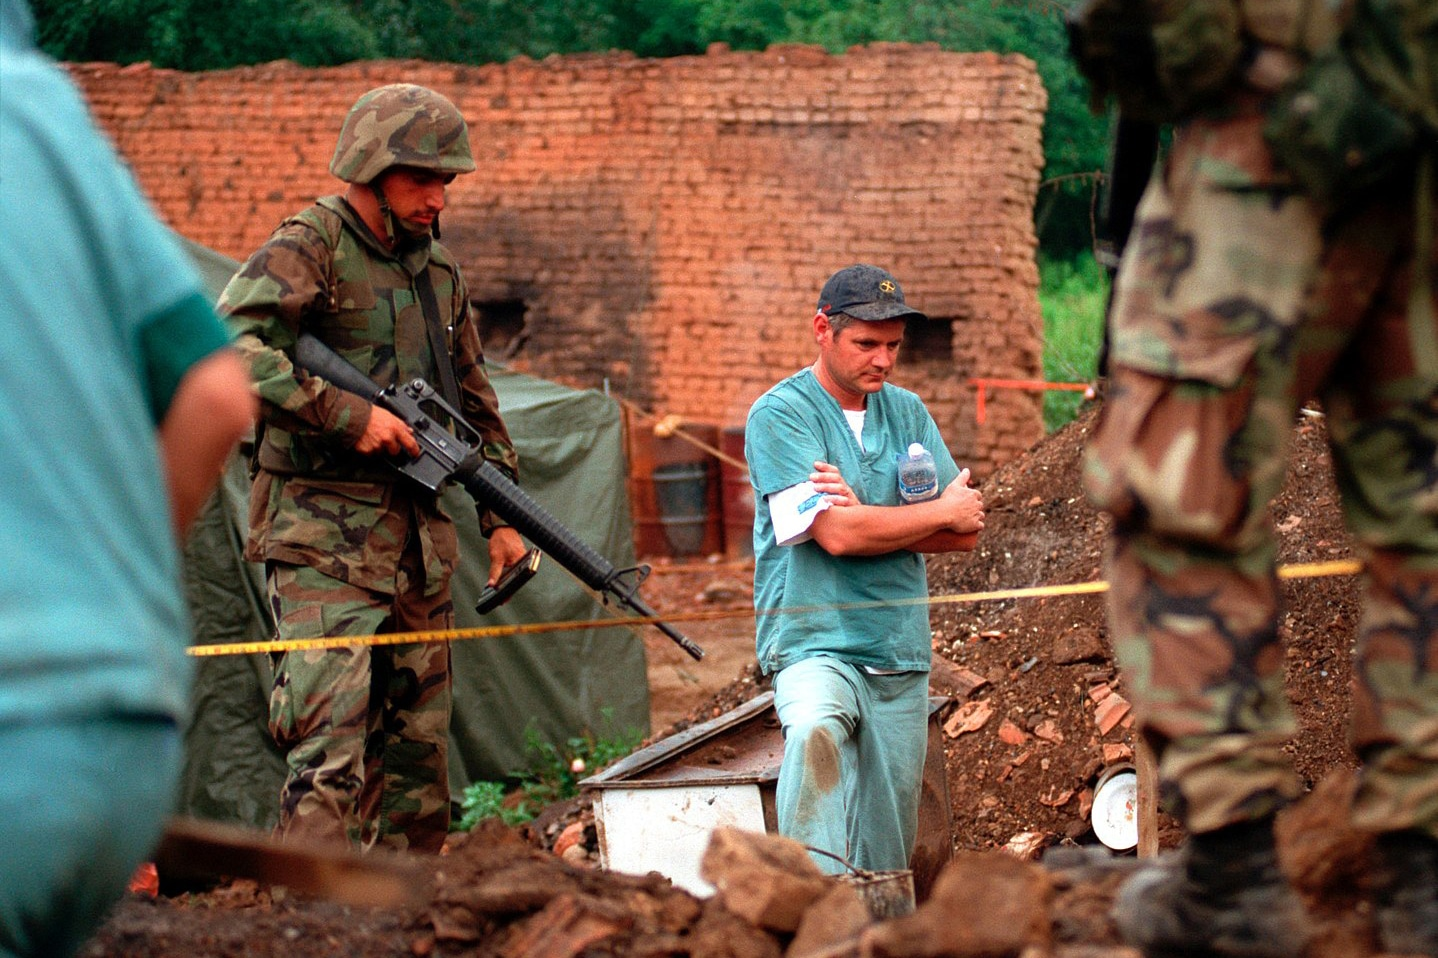 | US Marines provide security as members of the Royal Canadian Mounted Police Forensics Team investigate a grave site in a village in Kosovo on July 1 1999 | MR Online